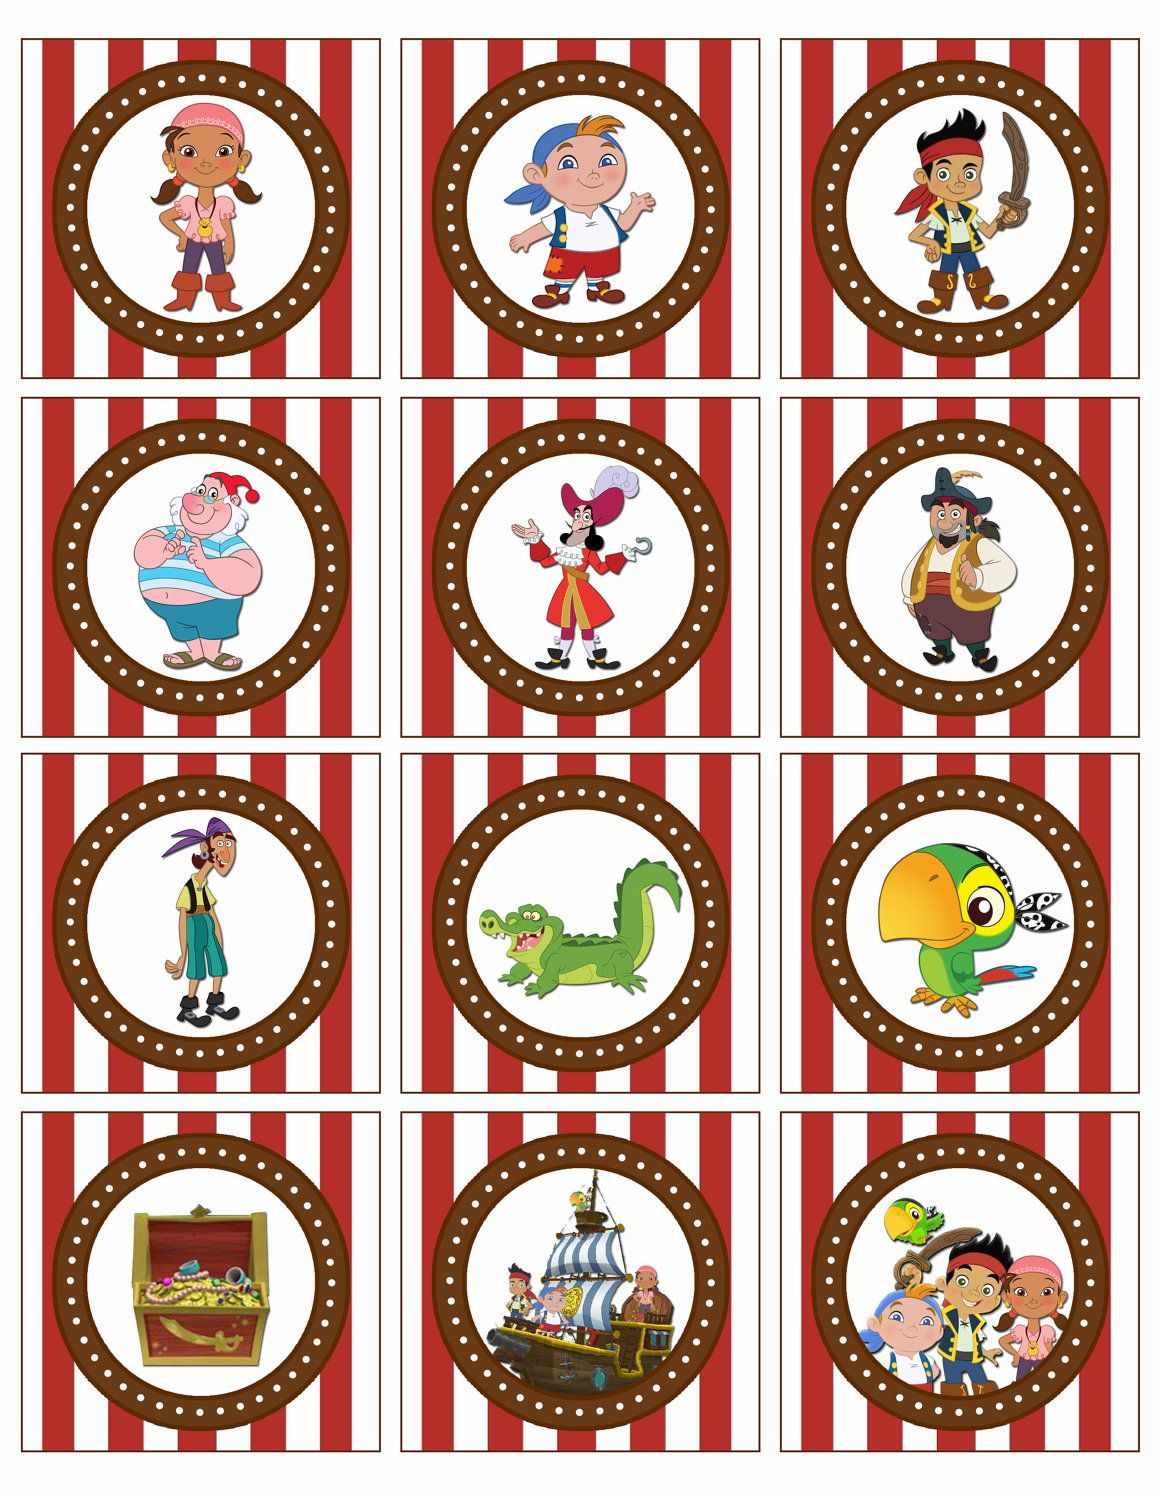 jake and the neverland pirates free printables | Jake and the ...